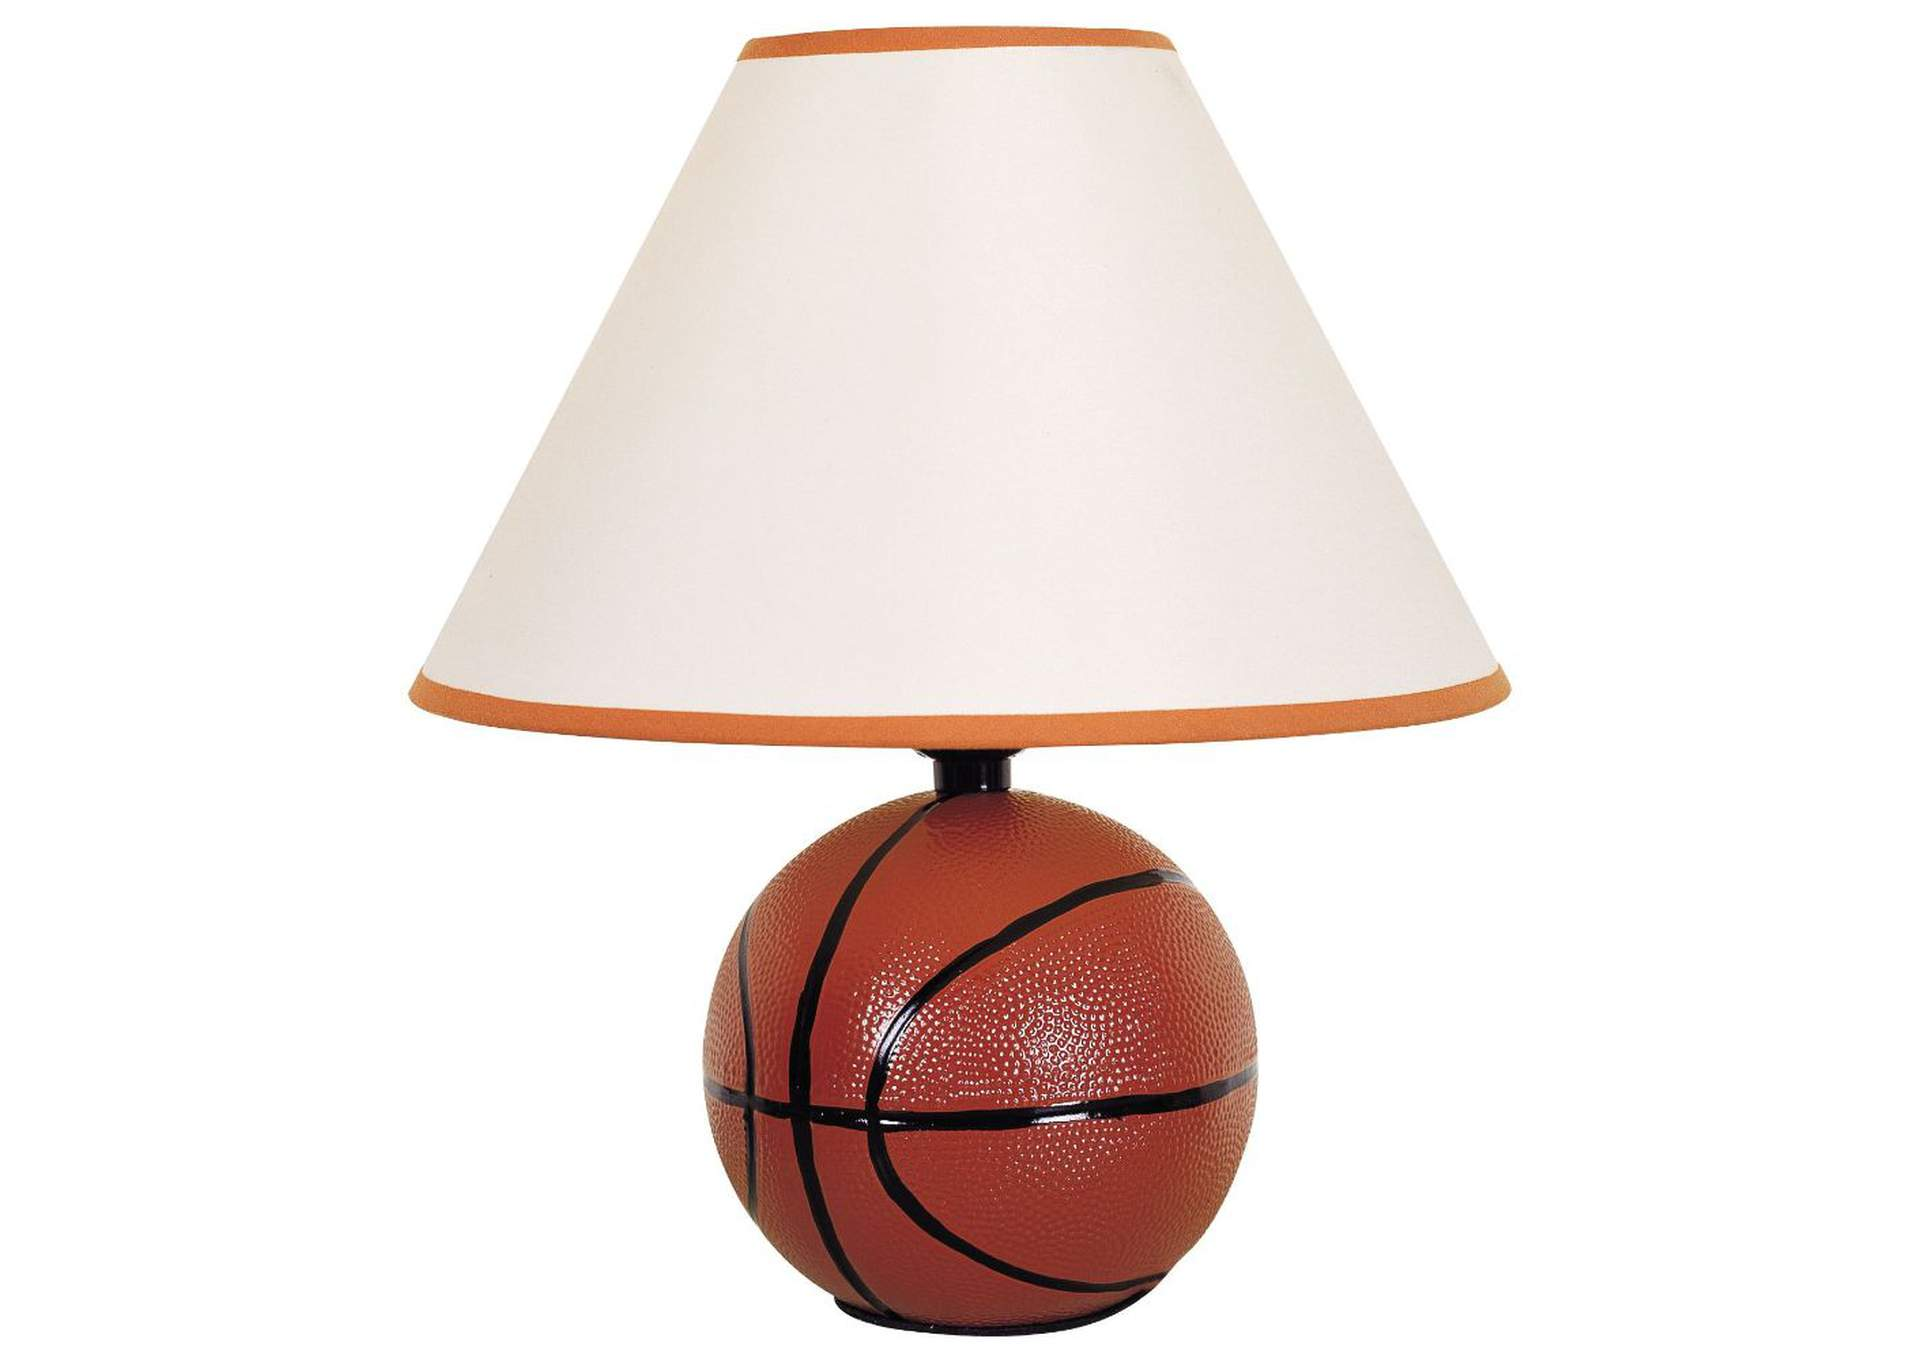 Basketball Chairs King Of Chairs All Star Basketball Table Lamp Set Of 8